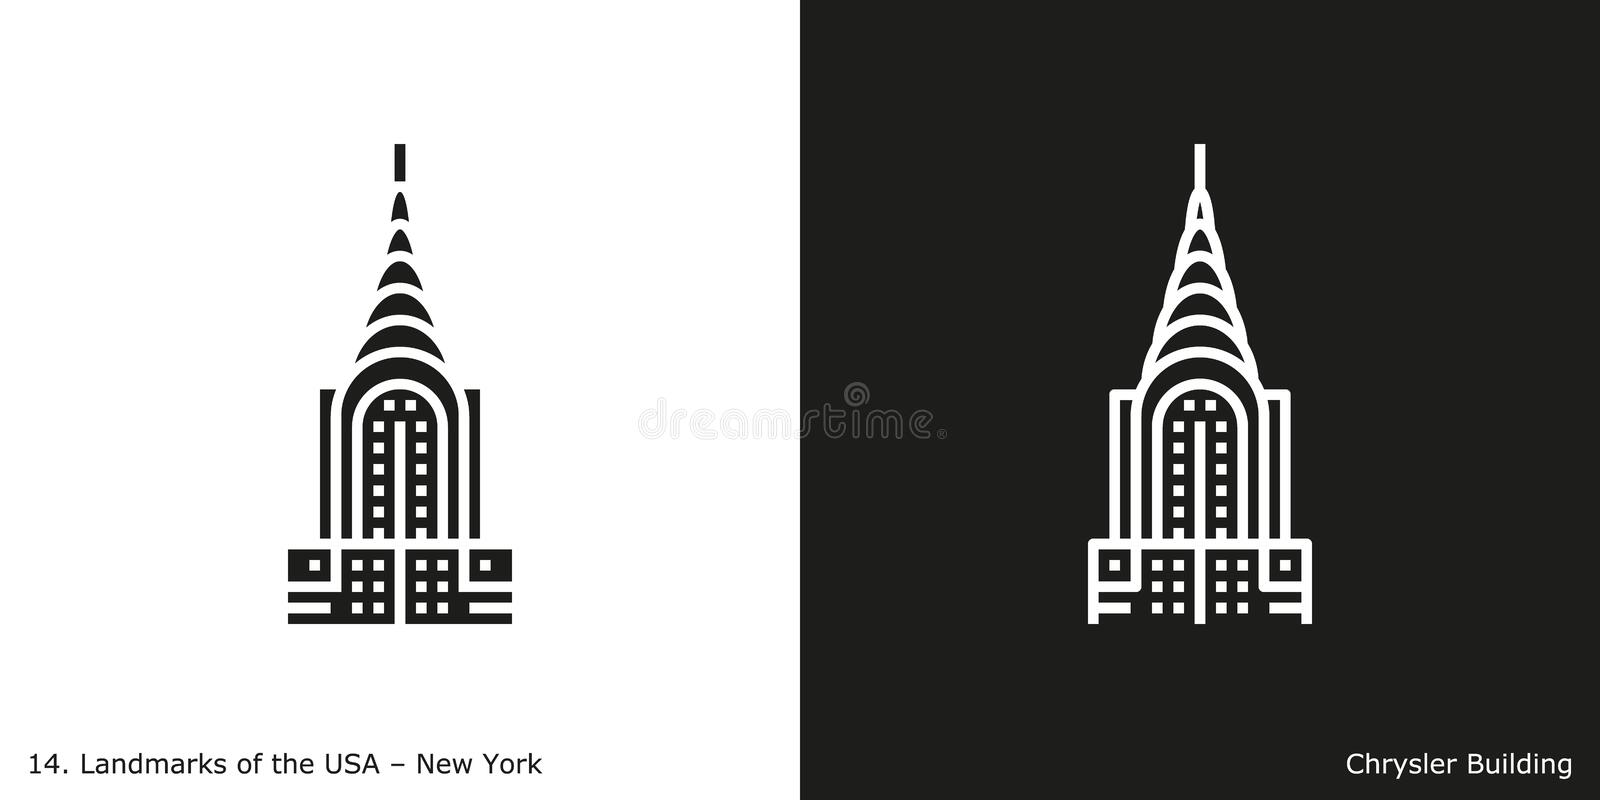 Chrysler Building icon royalty free illustration